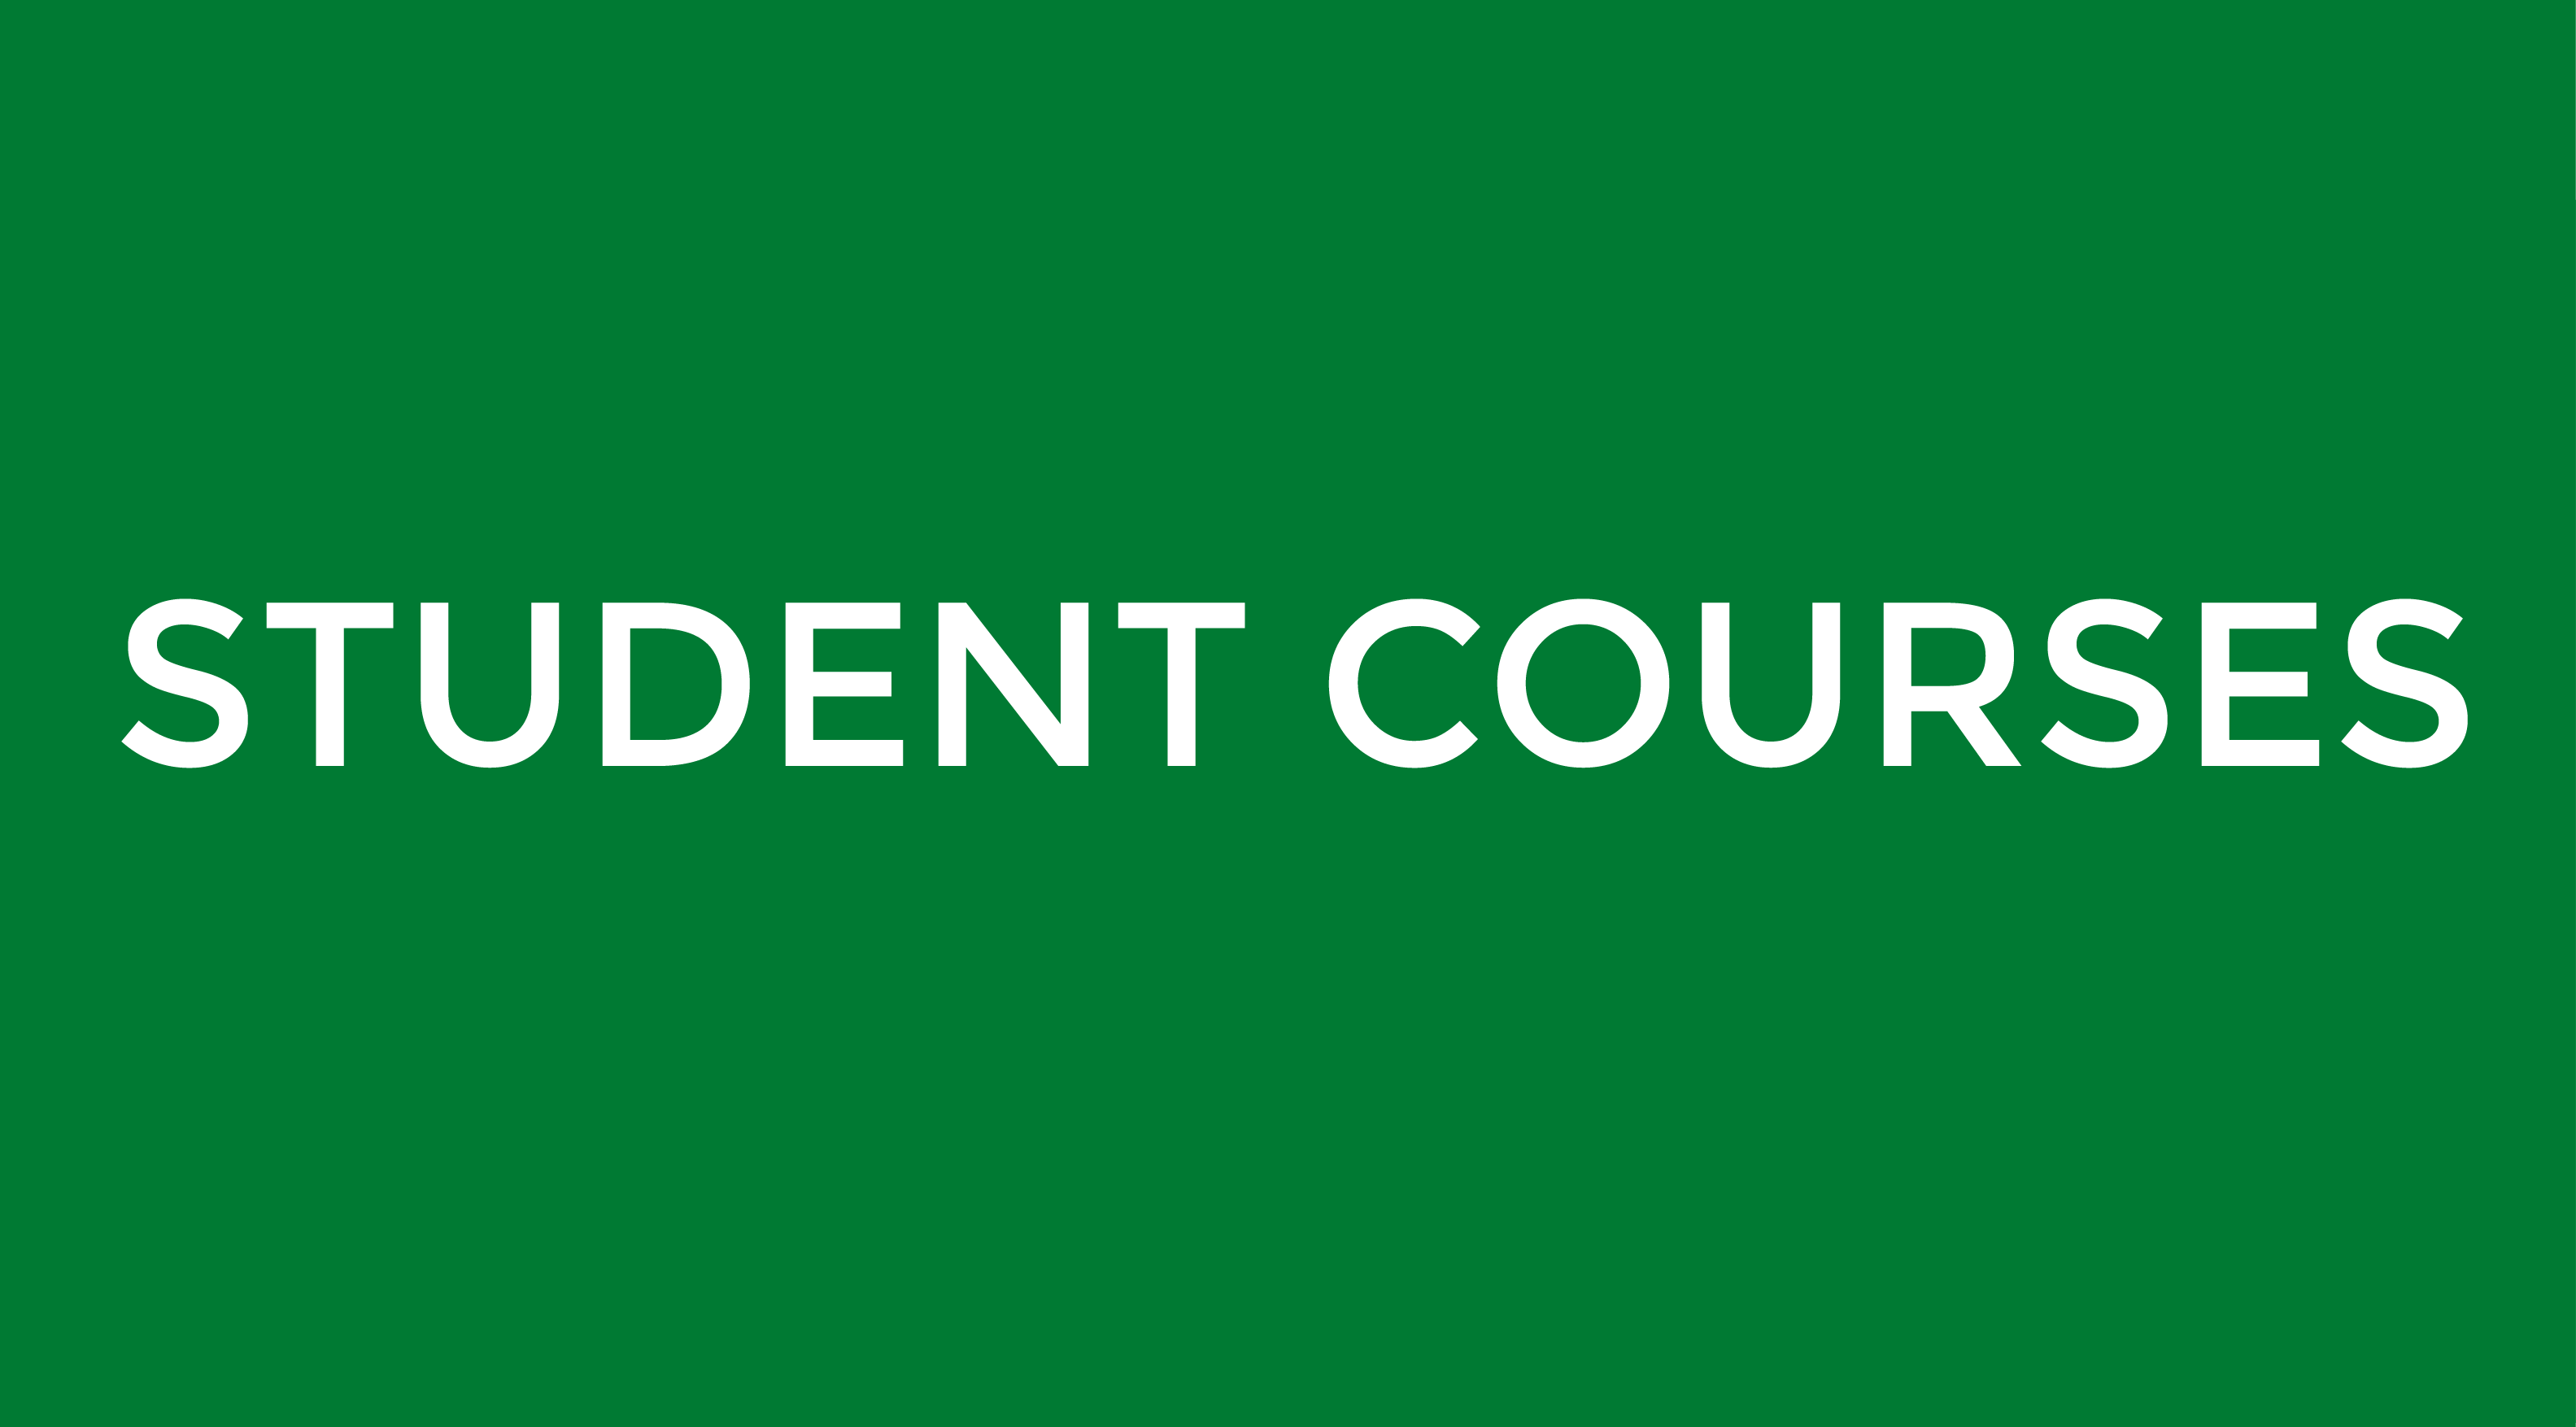 Student Courses